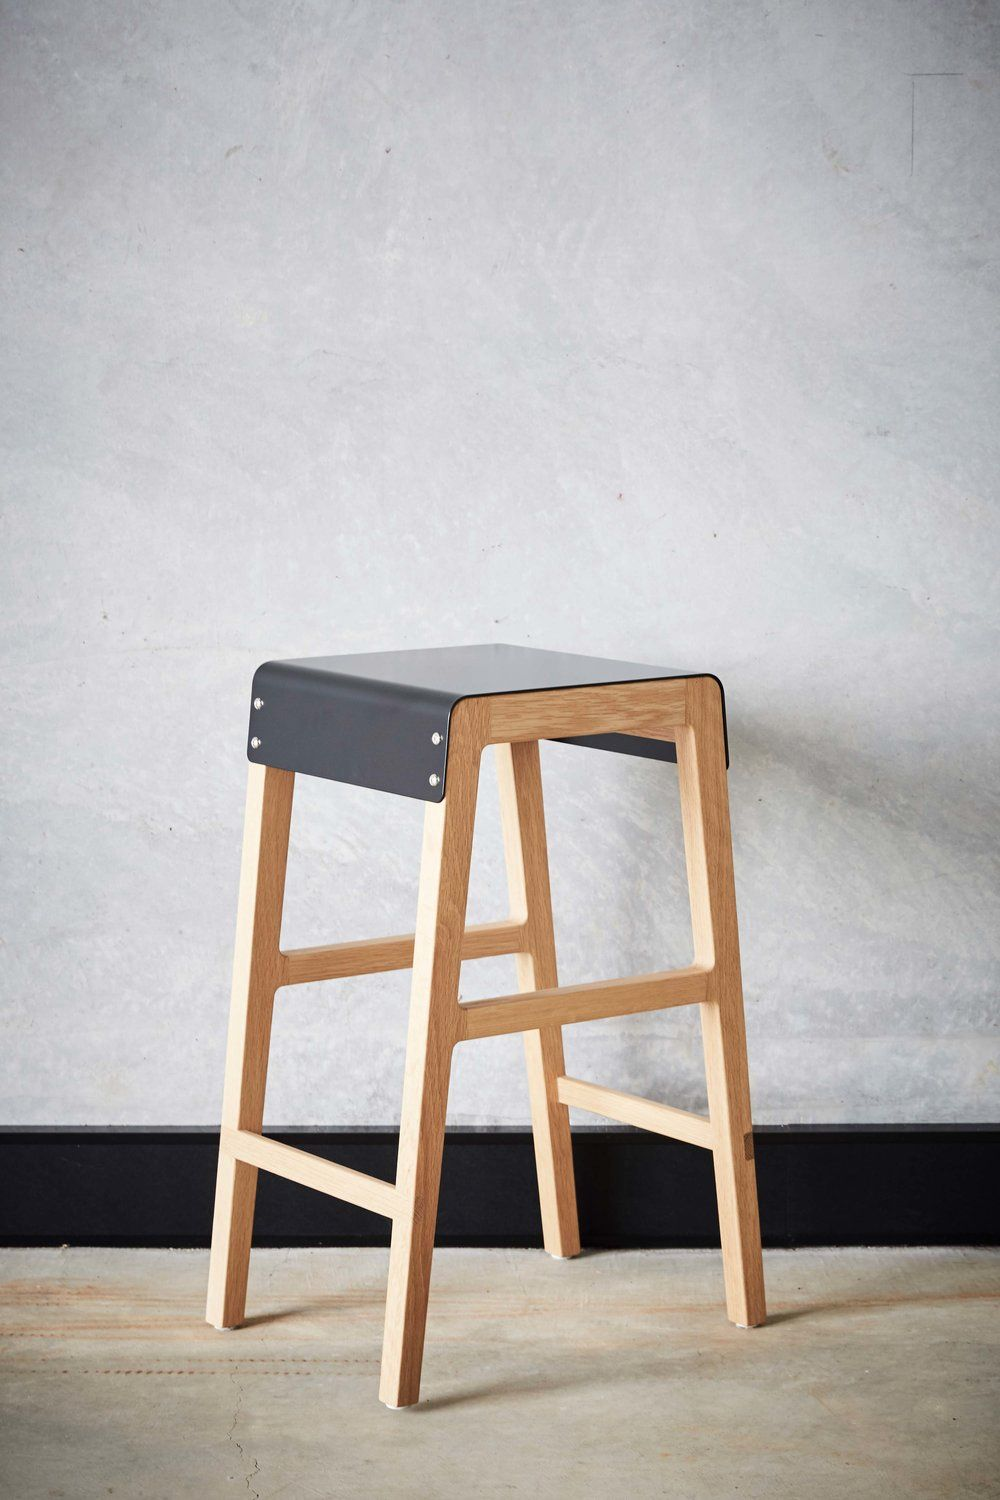 Willox Barstool 01 Mast Furniture Brisbane Designed And Made Furniture Furniture Design Simple Furniture